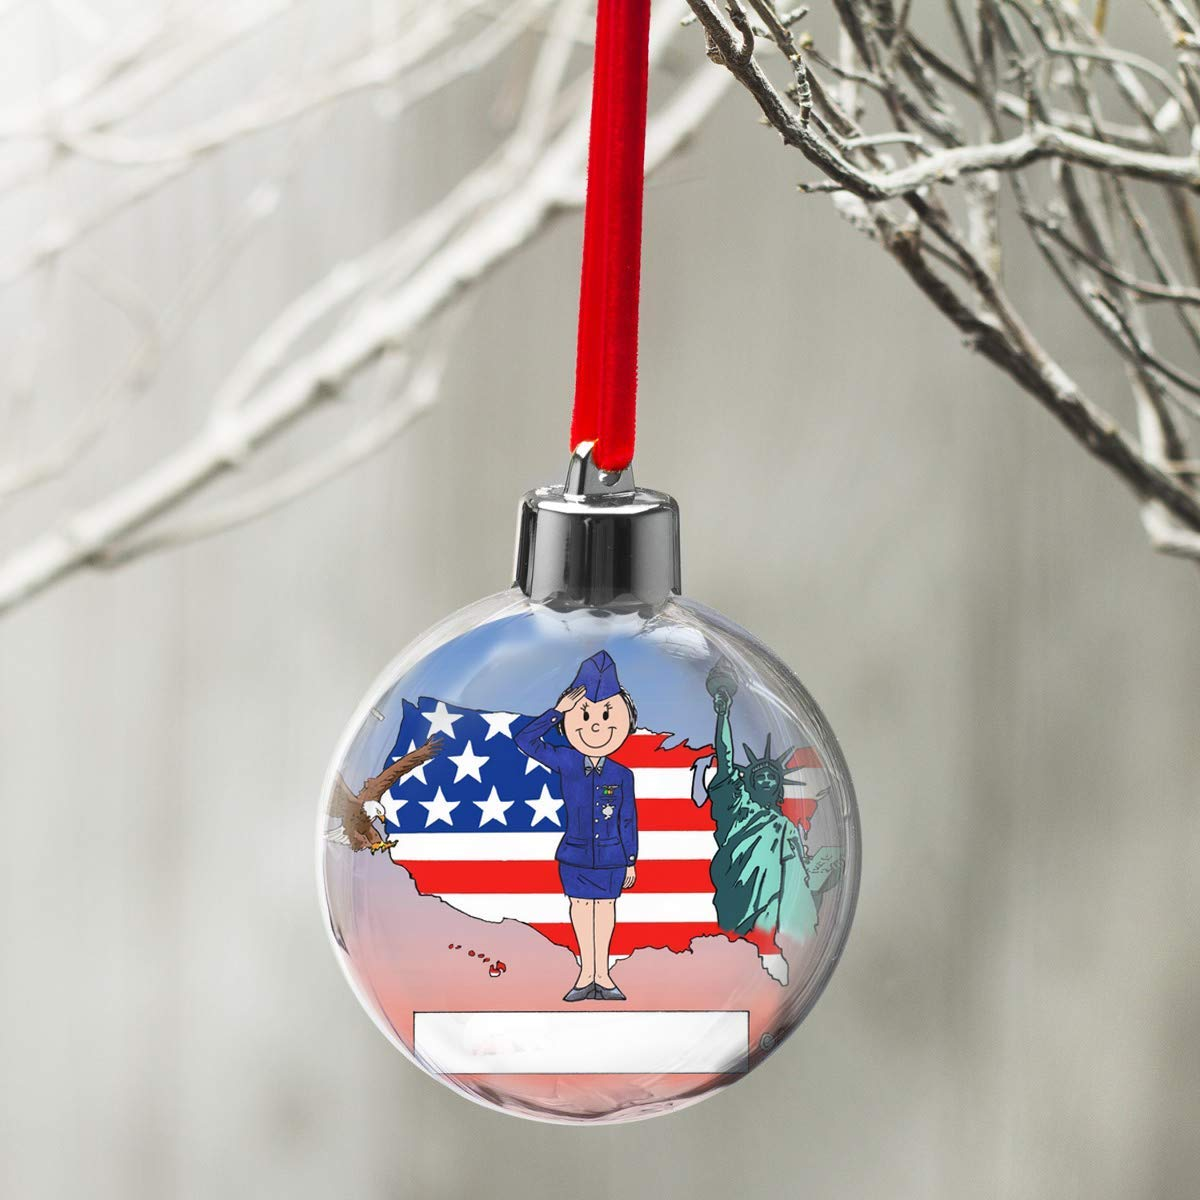 PrintedPerfection.com Personalized Friendly Folks Cartoon Globe Christmas Ornament: US Air Force Soldier - Female